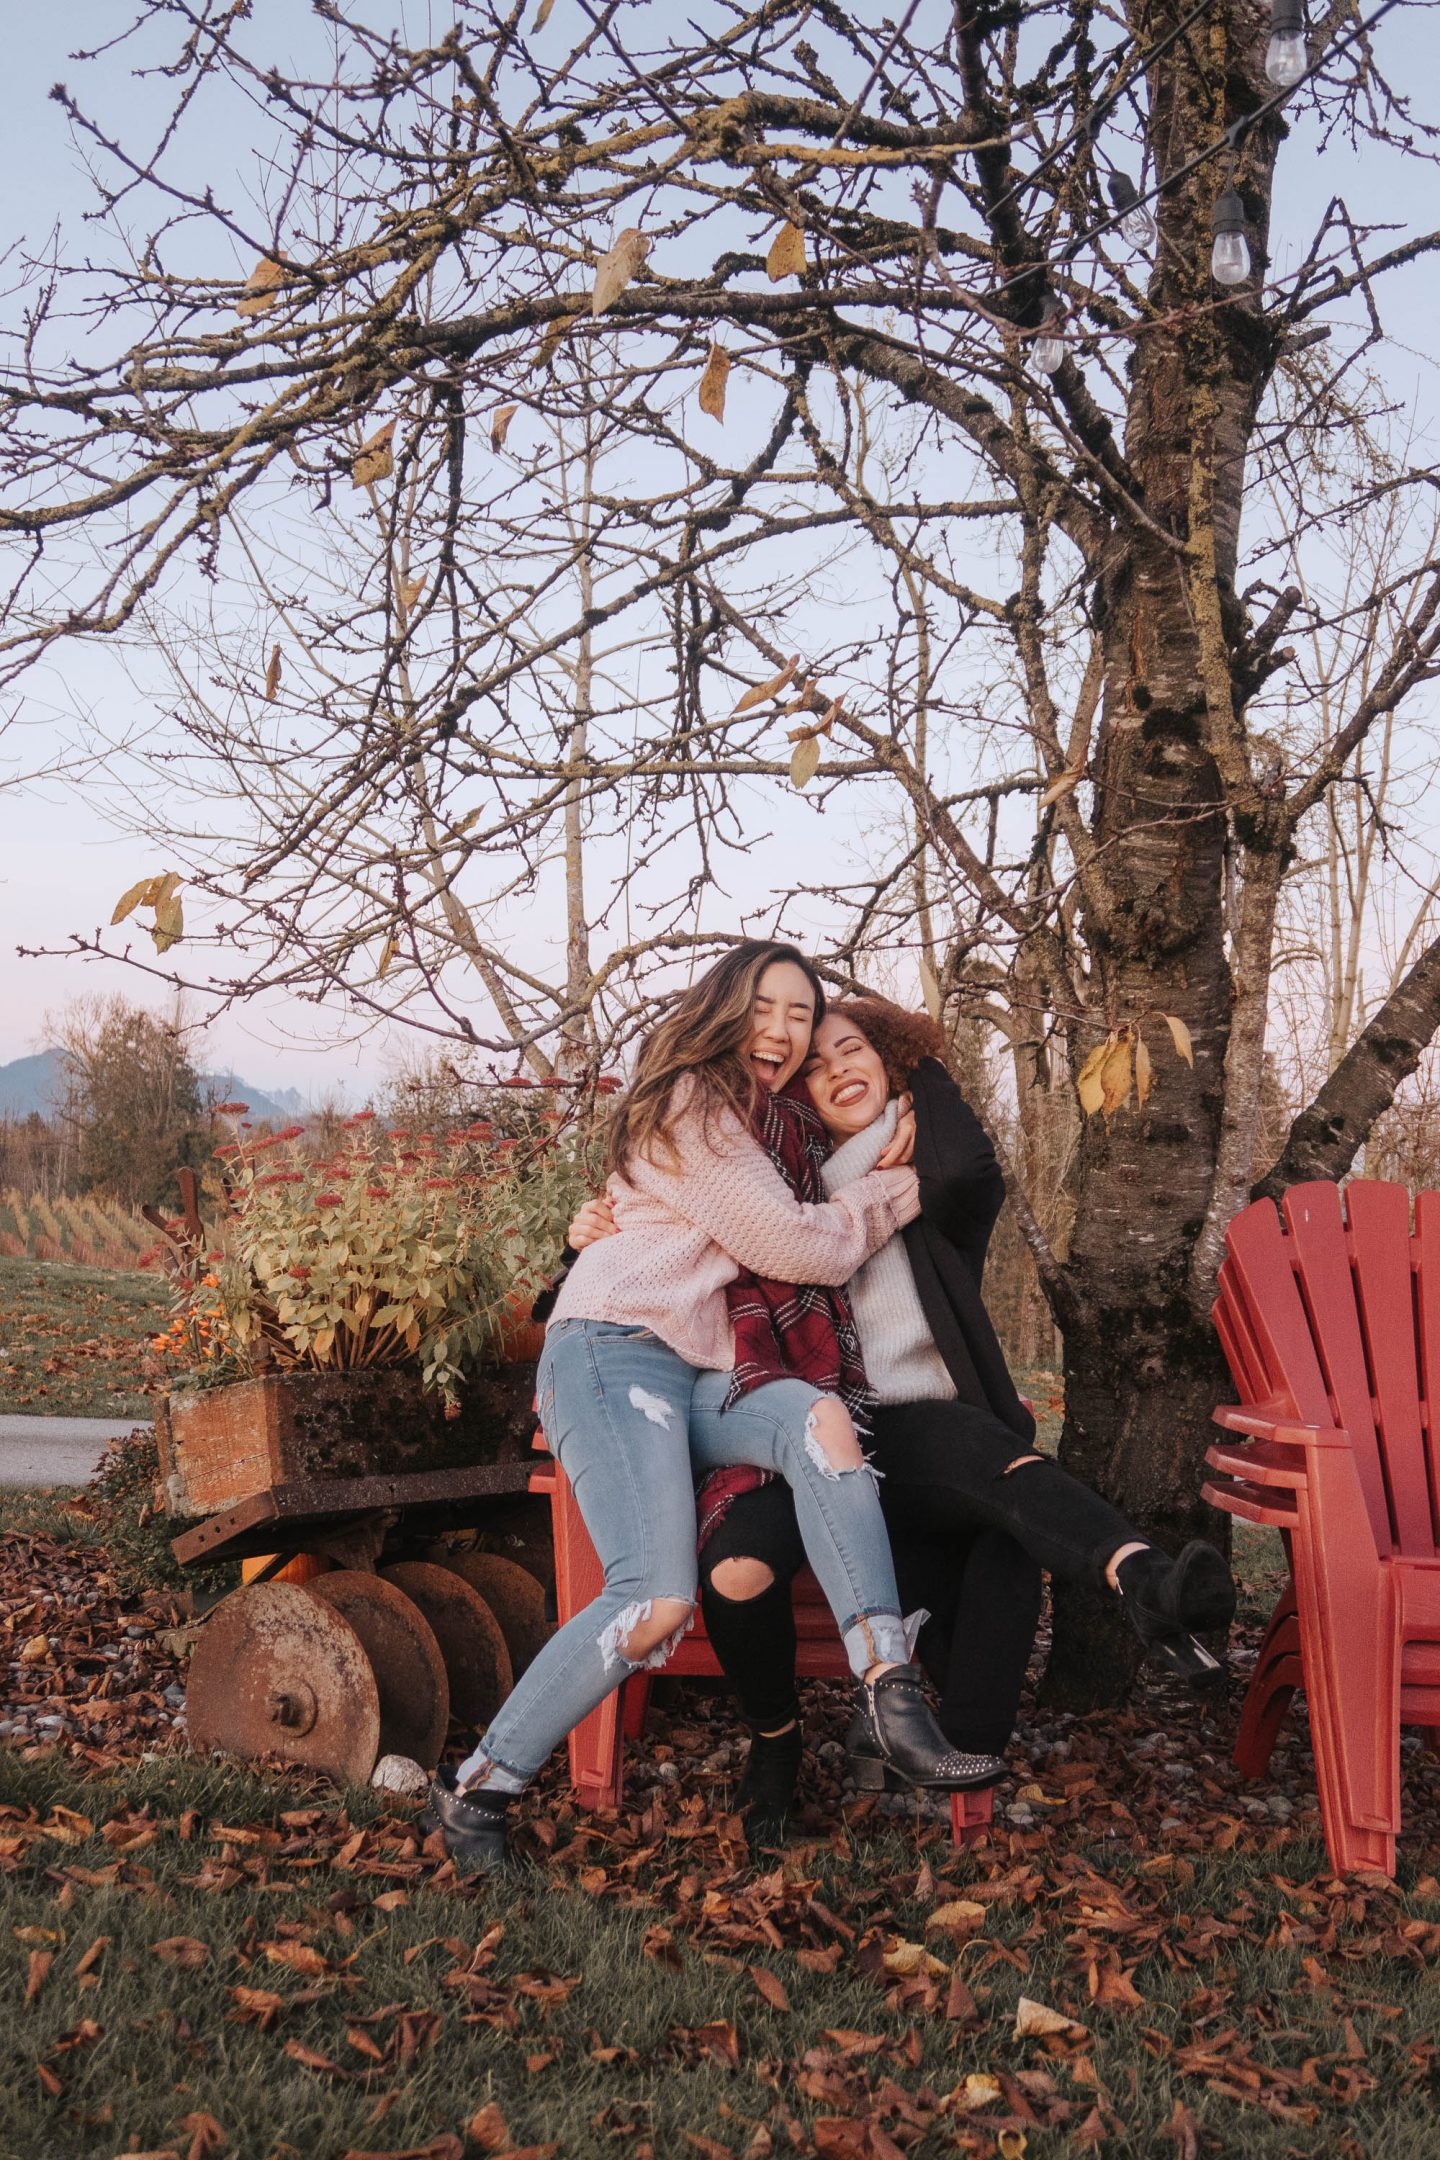 Giving my girlfriend a hug after a wine tour in Abbotsford